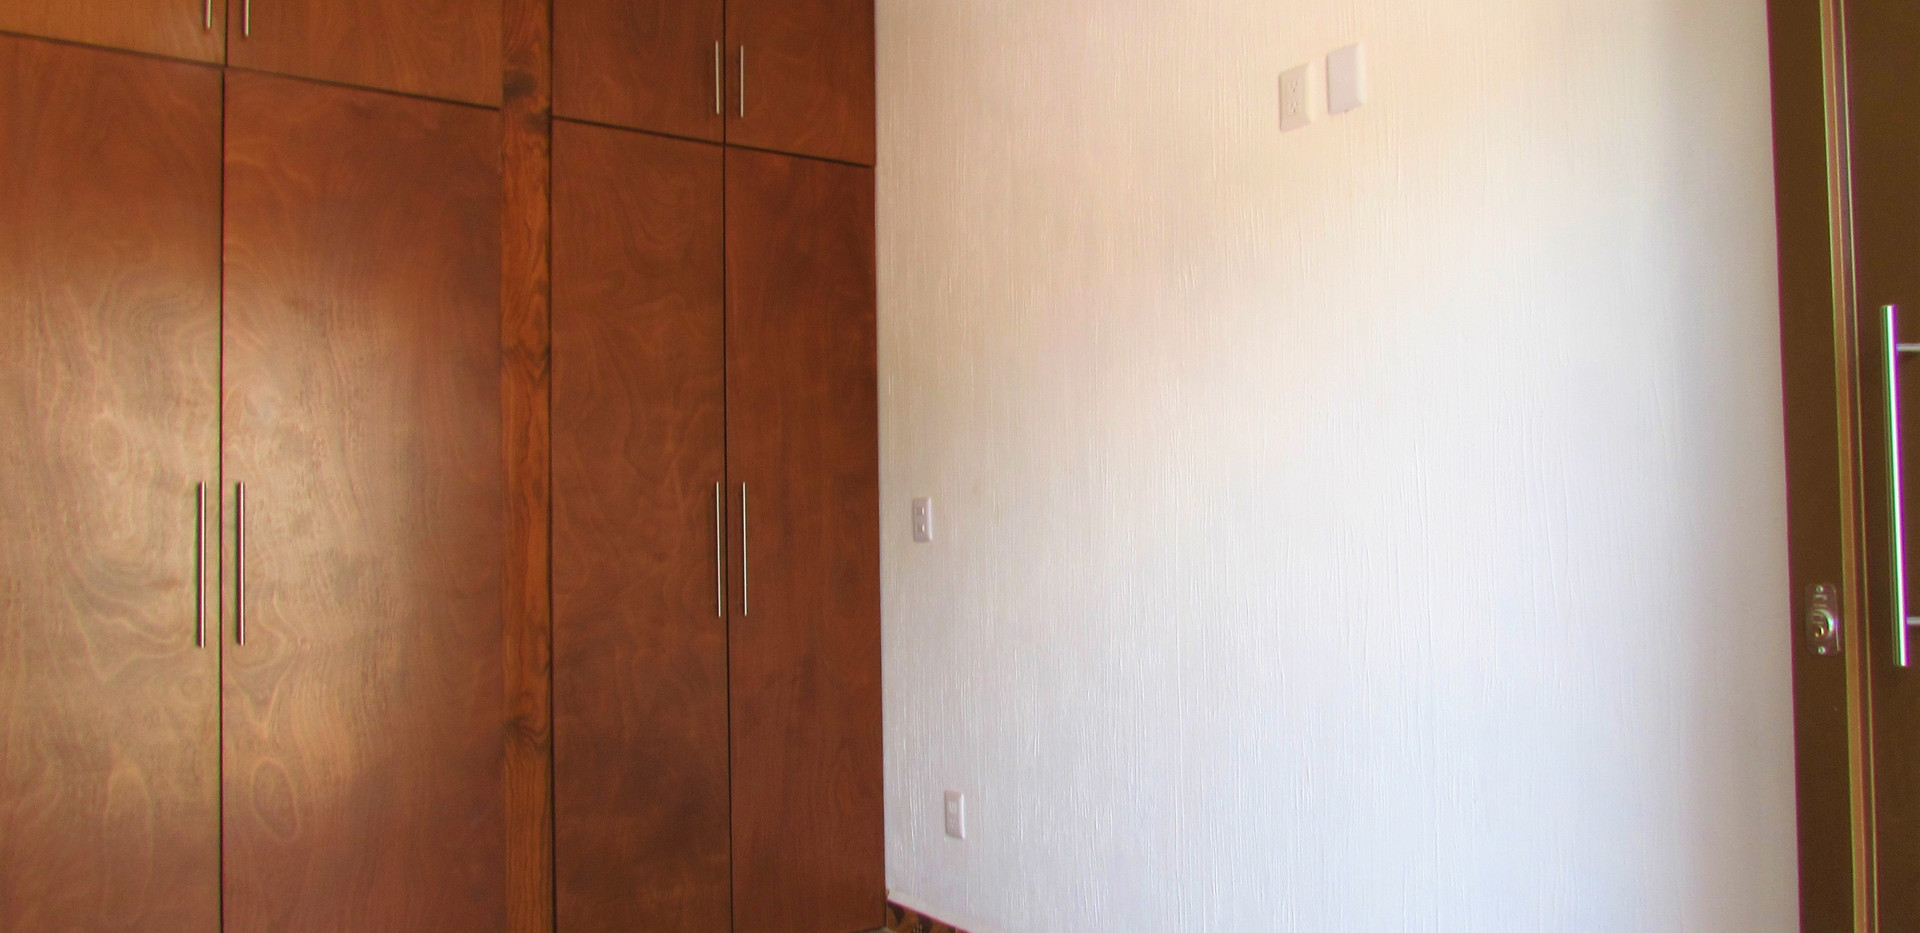 Main bedroom with closet